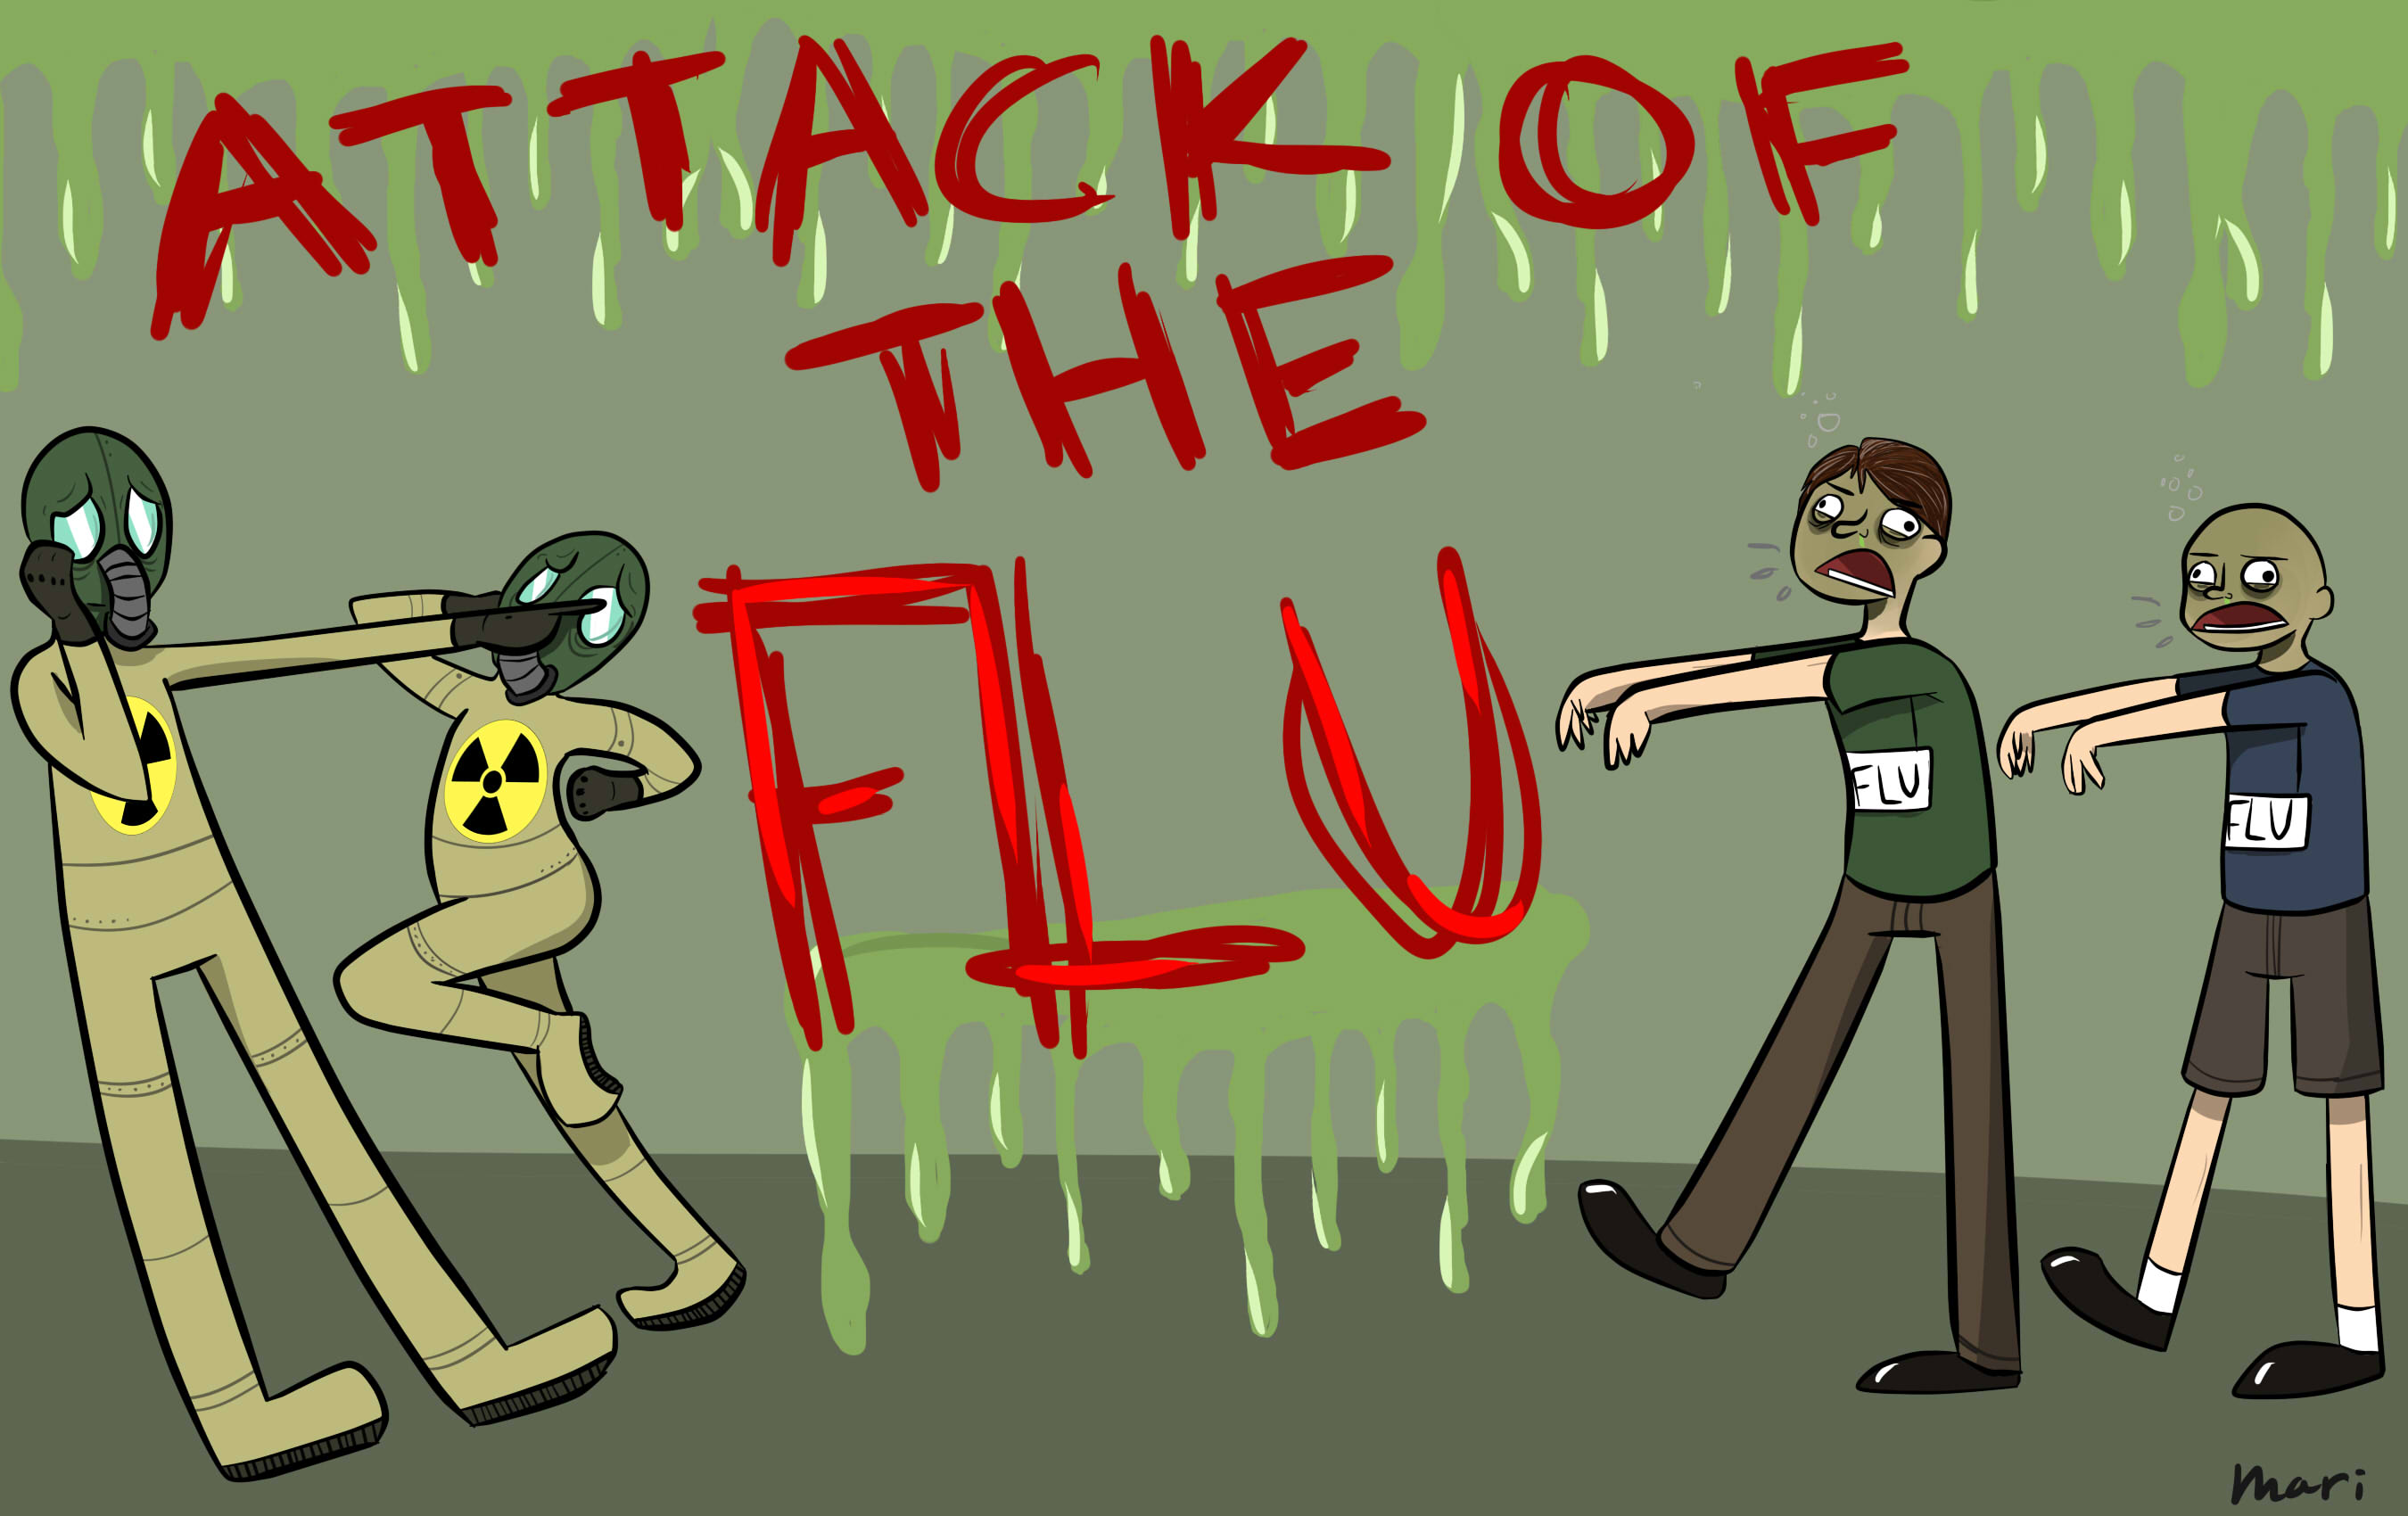 https://i2.wp.com/newspaper.neisd.net/macarthur/files/2013/02/Flu-season-cartoon-27yig39.jpg